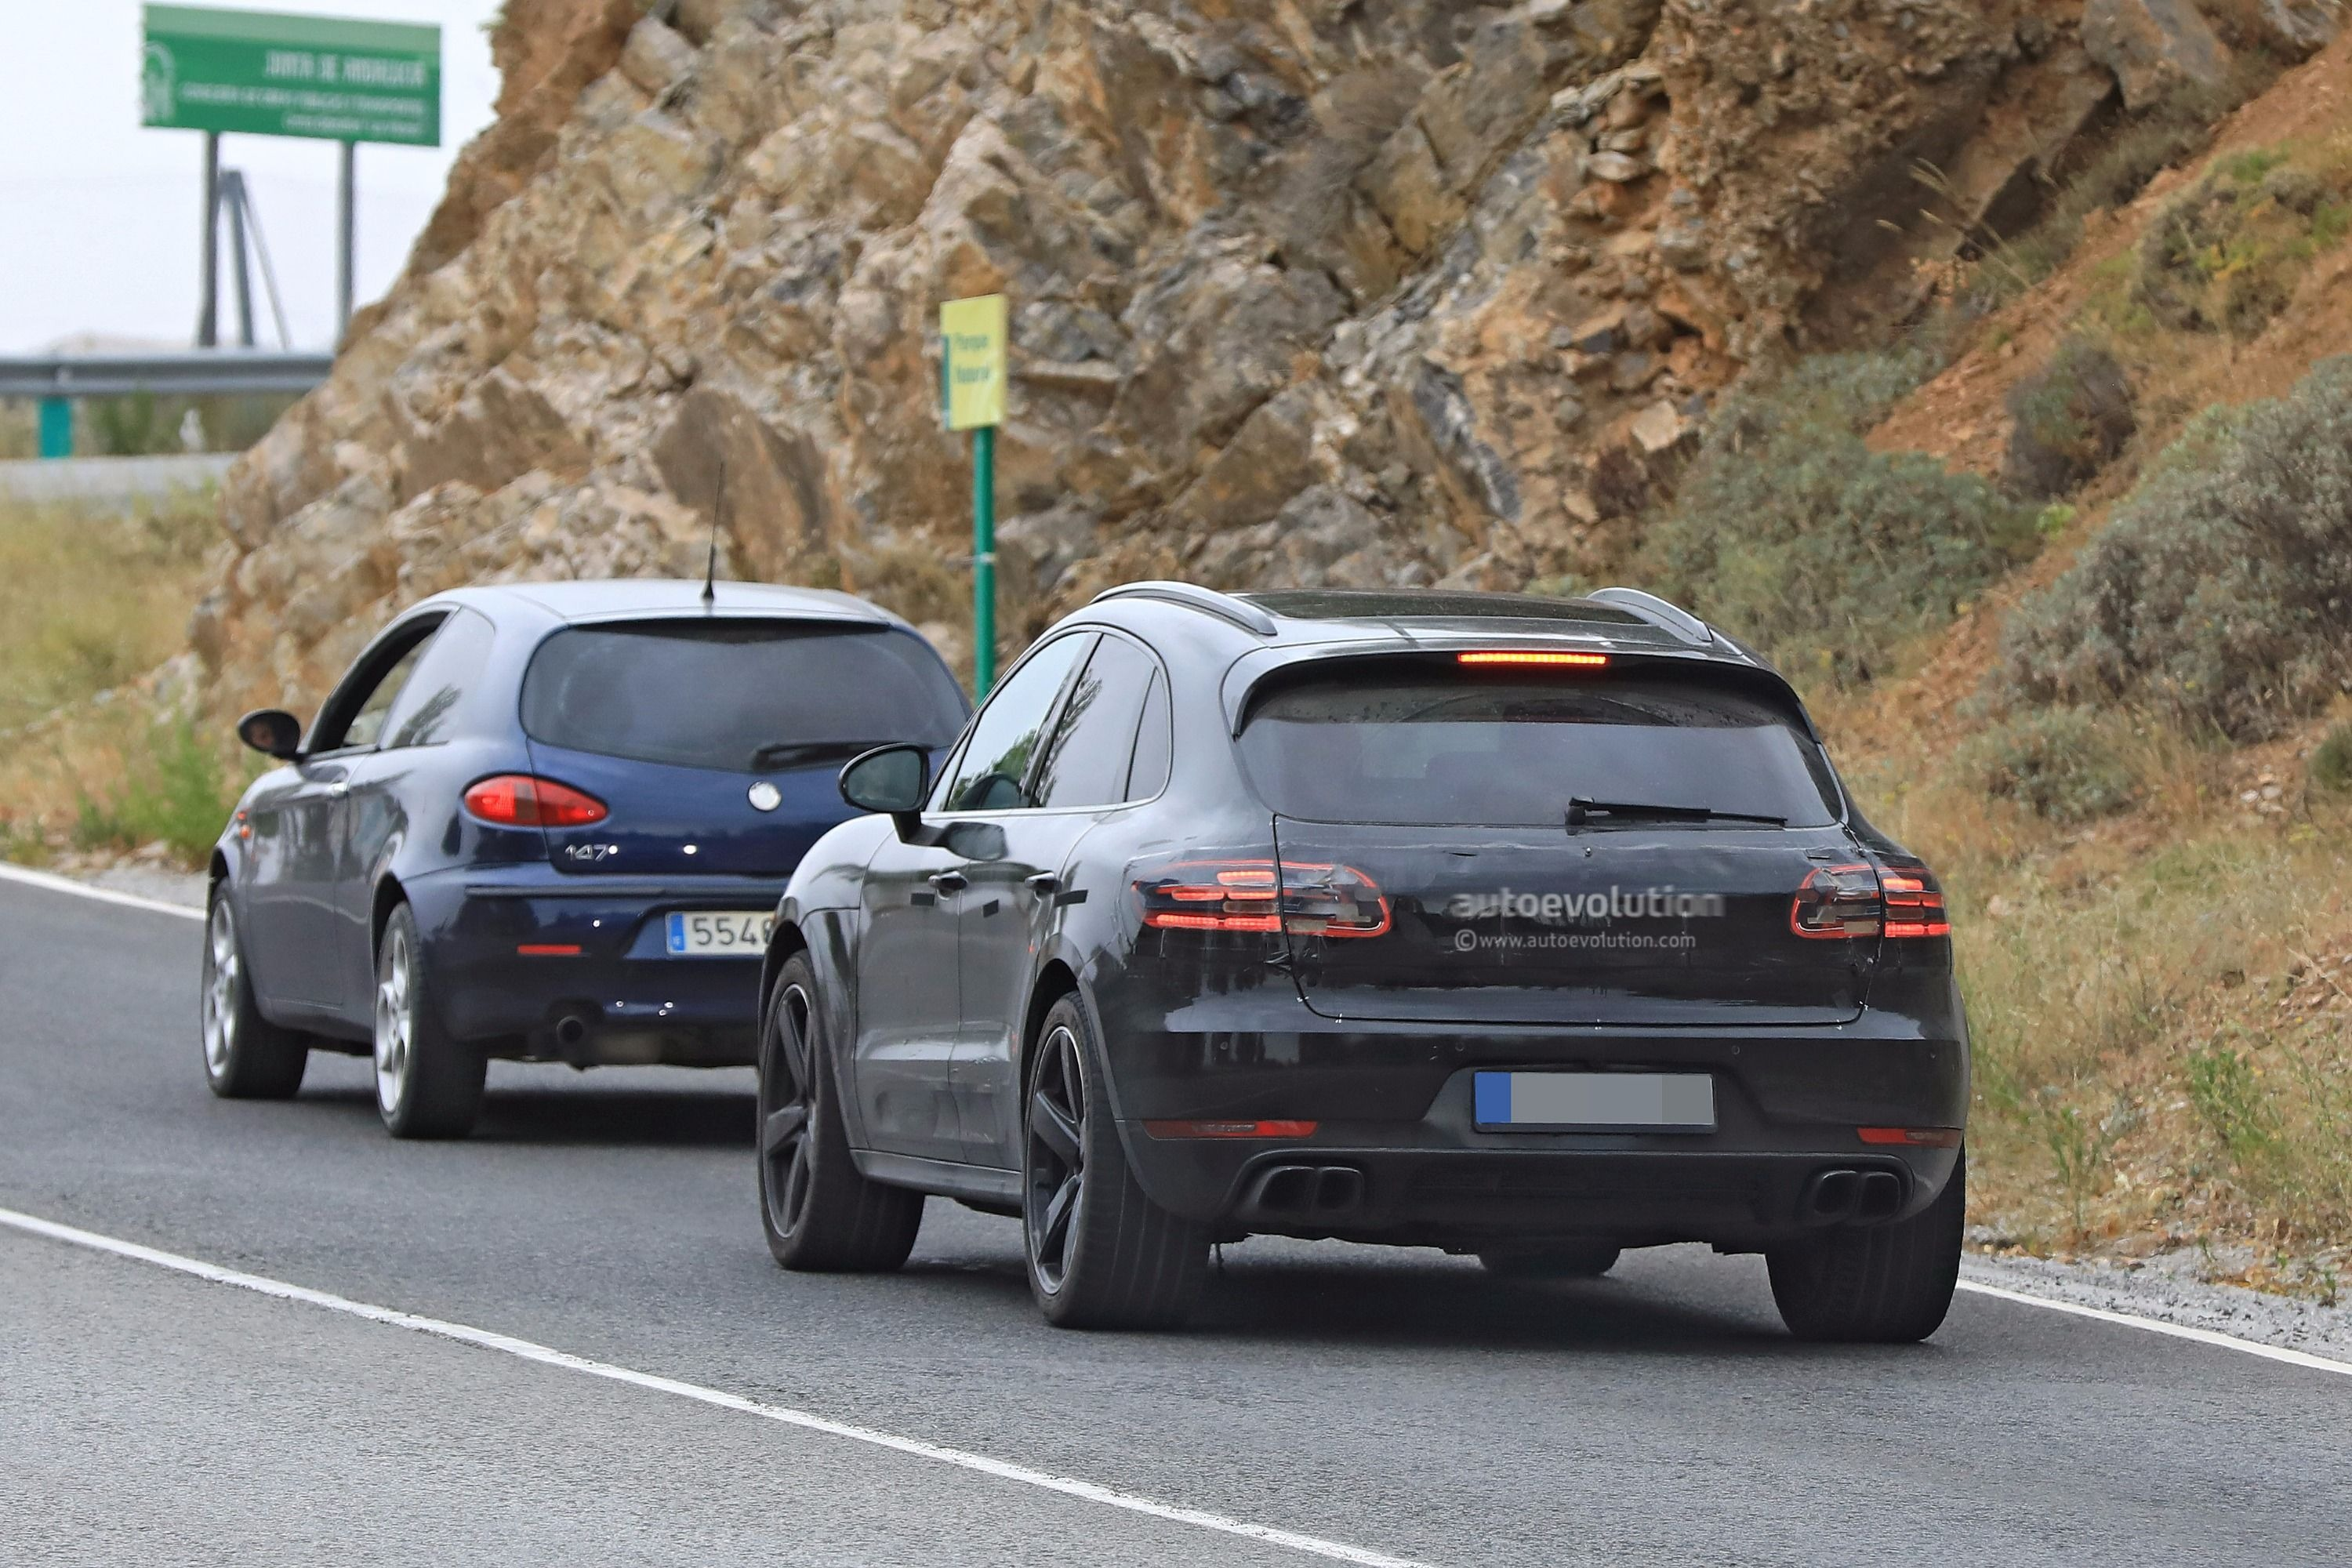 Porsche Cayenne Redesign >> Spyshots: 2019 Porsche Macan Prototype Poses For The Camera - autoevolution